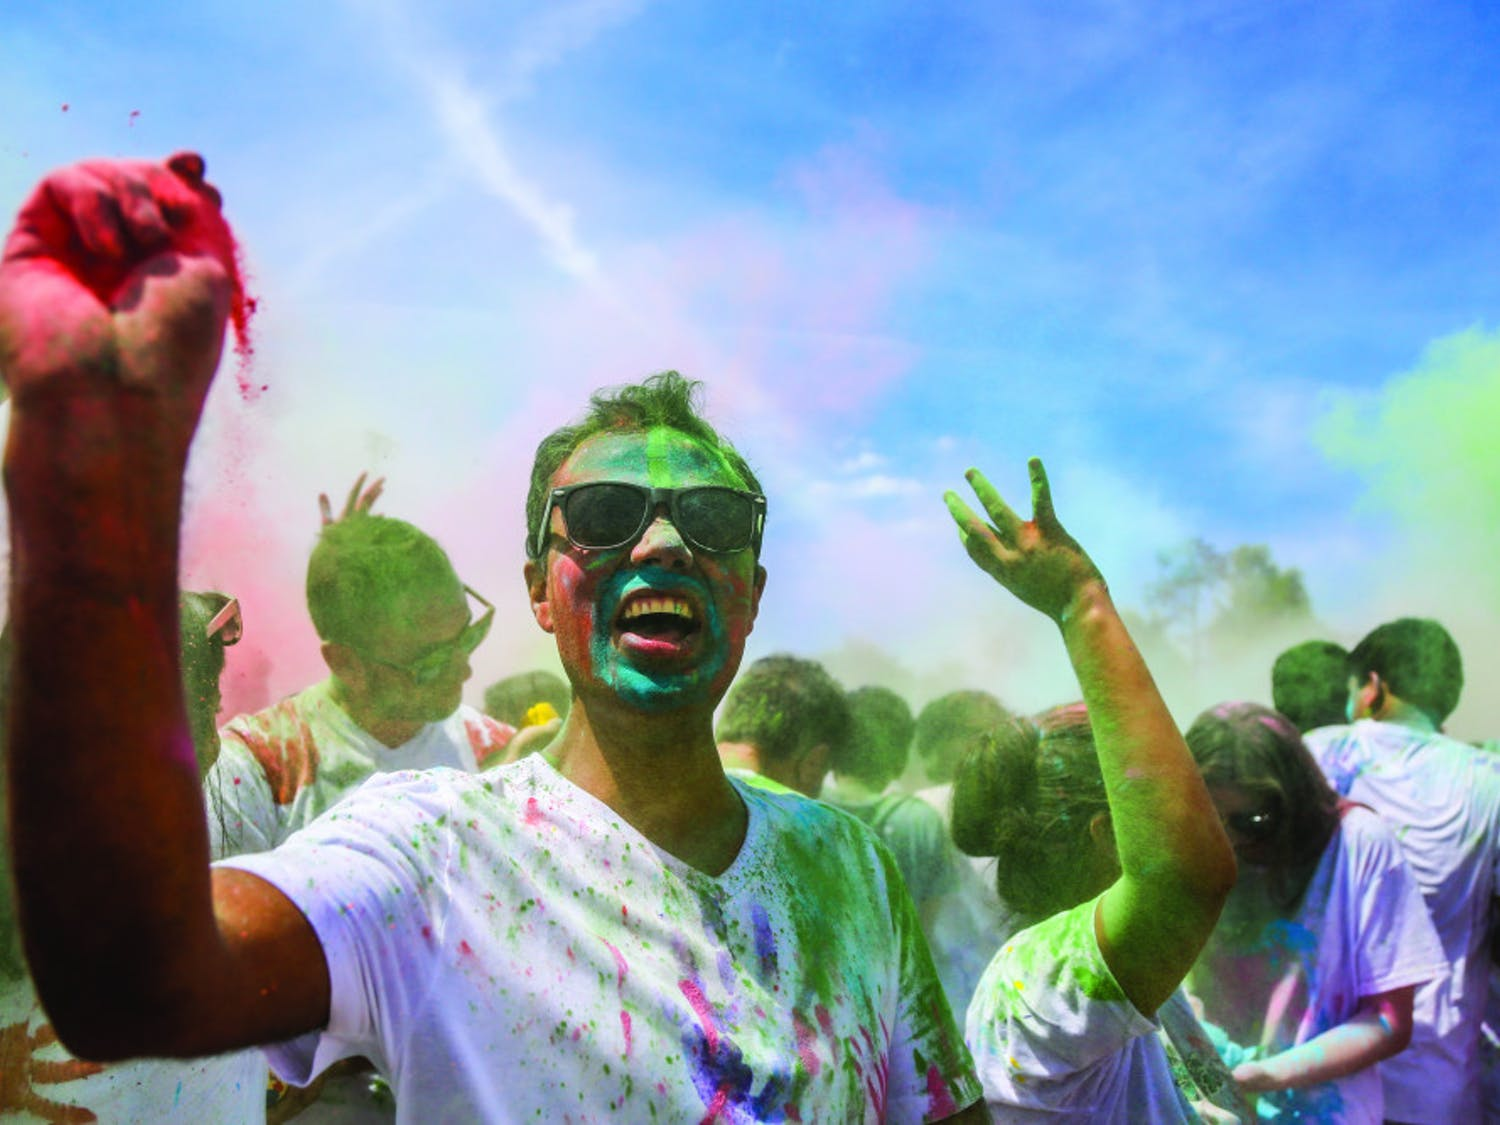 Khem B. Banjara, a 30-year-old neuro technologist at UF Health Shands Cancer Hospital, throws paint during the UF Holi Festival of Colors, organized by the UF Indian Student Association and Student Government, on Sunday afternoon. Above, more than 1,000 people attended the event, which lasted more than three hours.